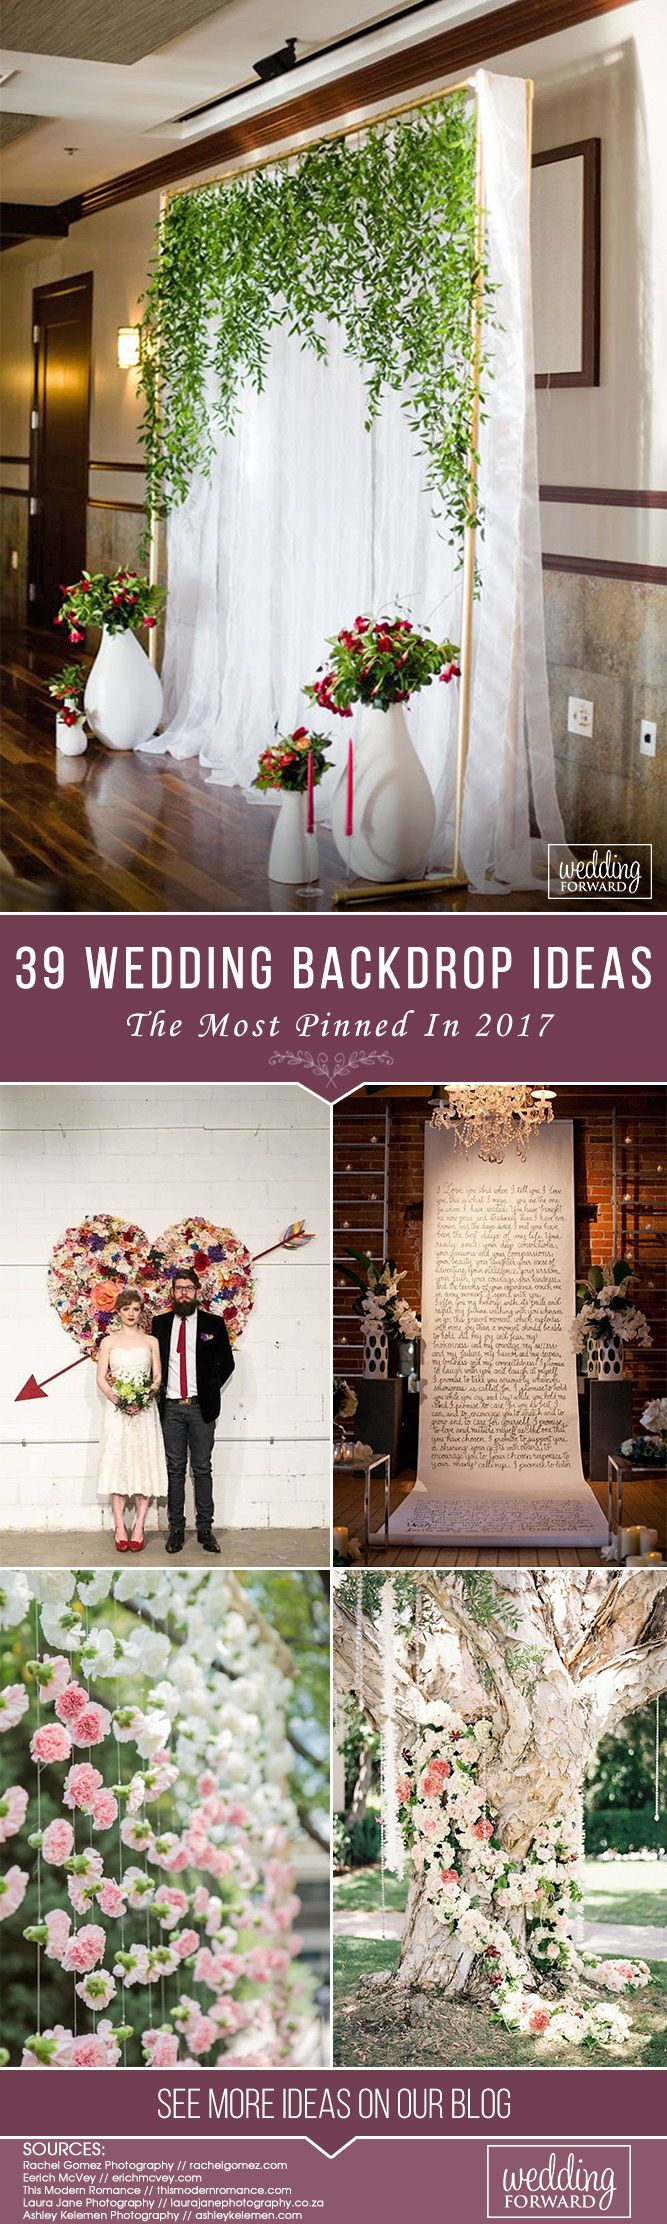 Wedding decorations backdrop   Most Pinned Wedding Backdrop Ideas   wedding ideas